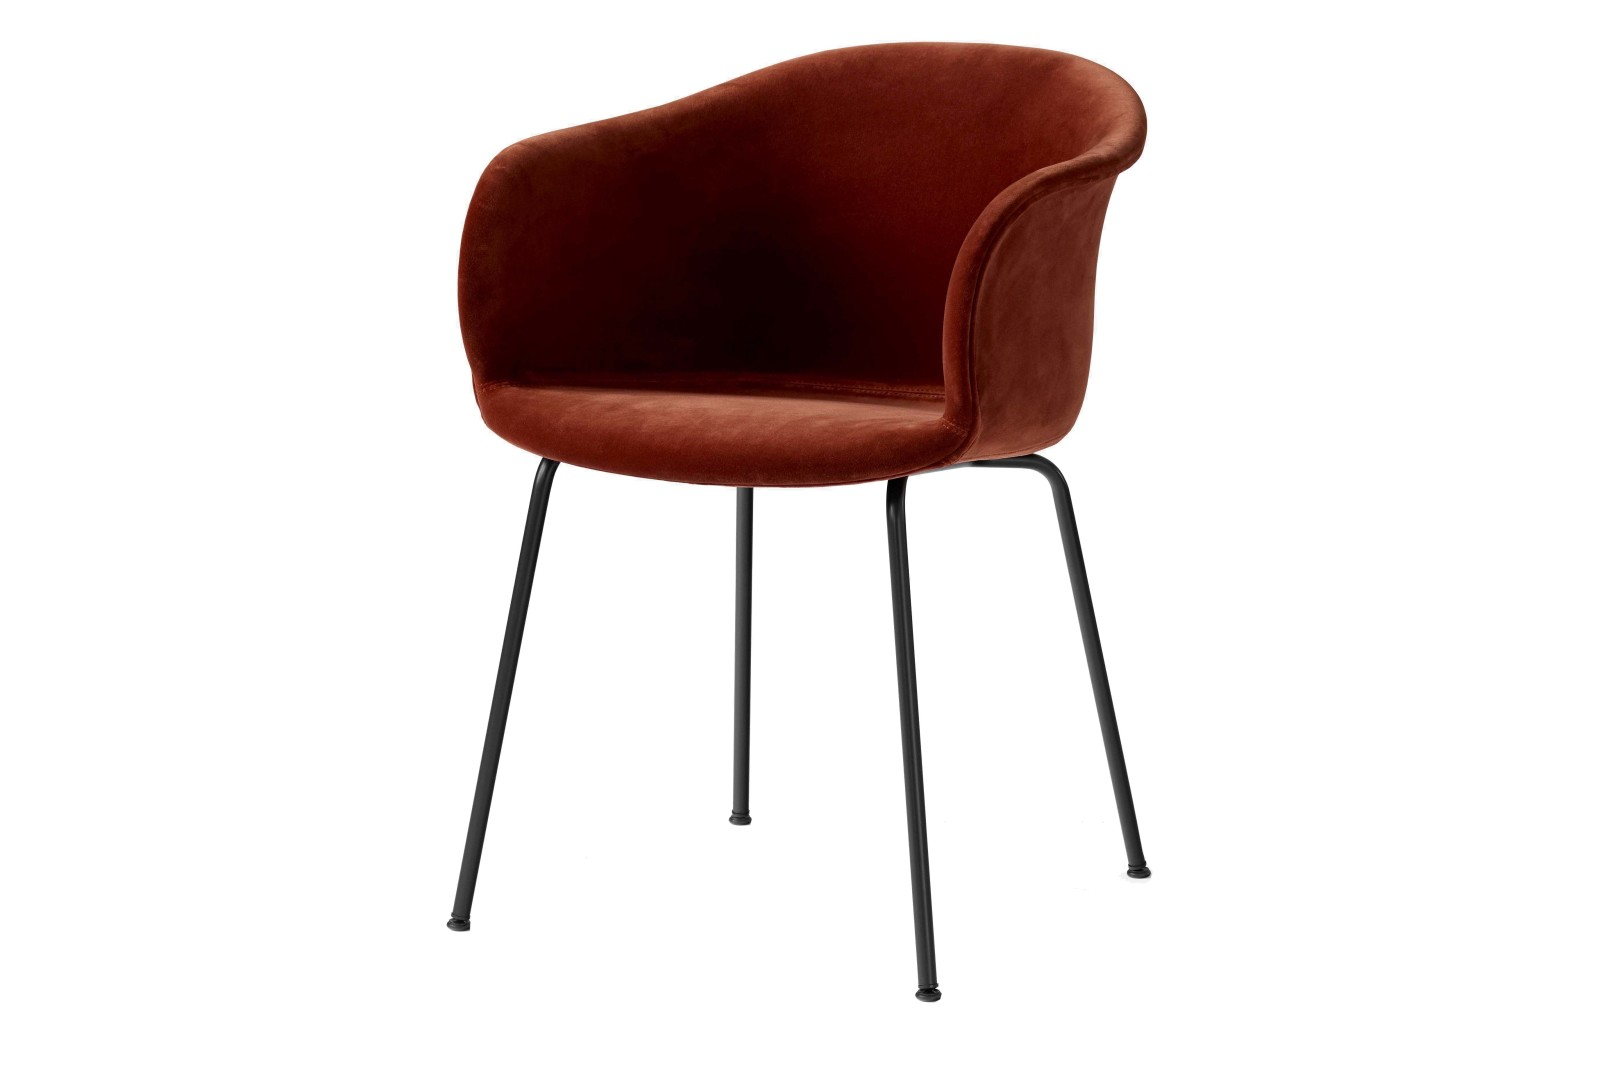 Elefy JH29 Dining Chair with Tube Base - Upholstered Lila, Black base